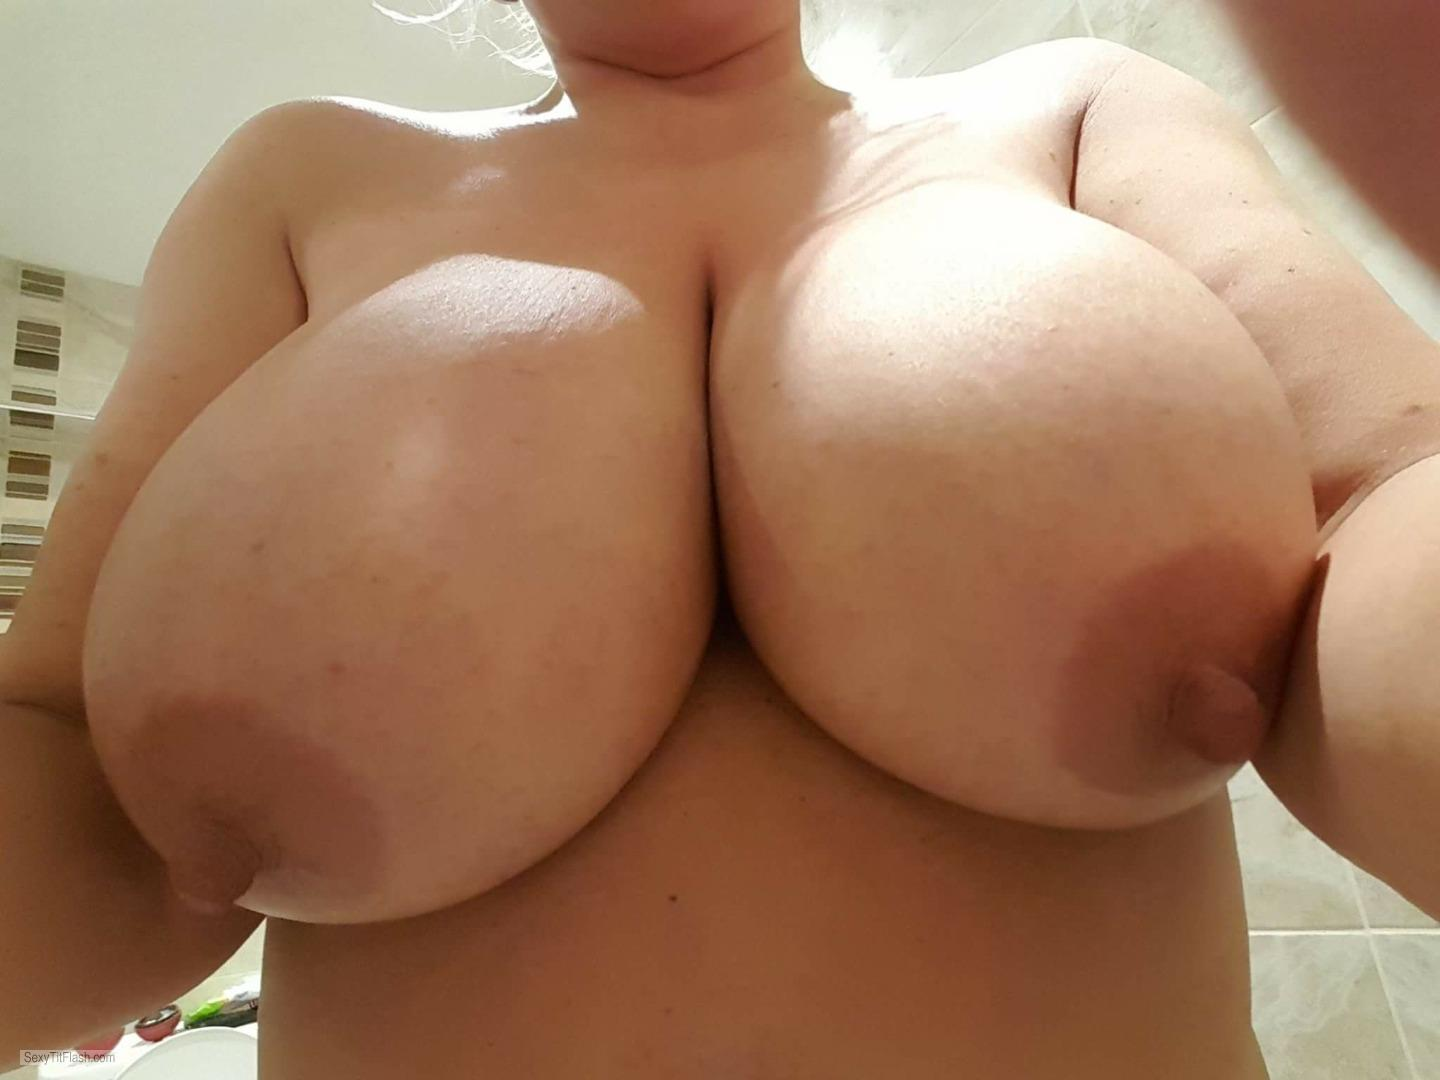 Extremely big Tits Of My Ex-Girlfriend Hot Anon